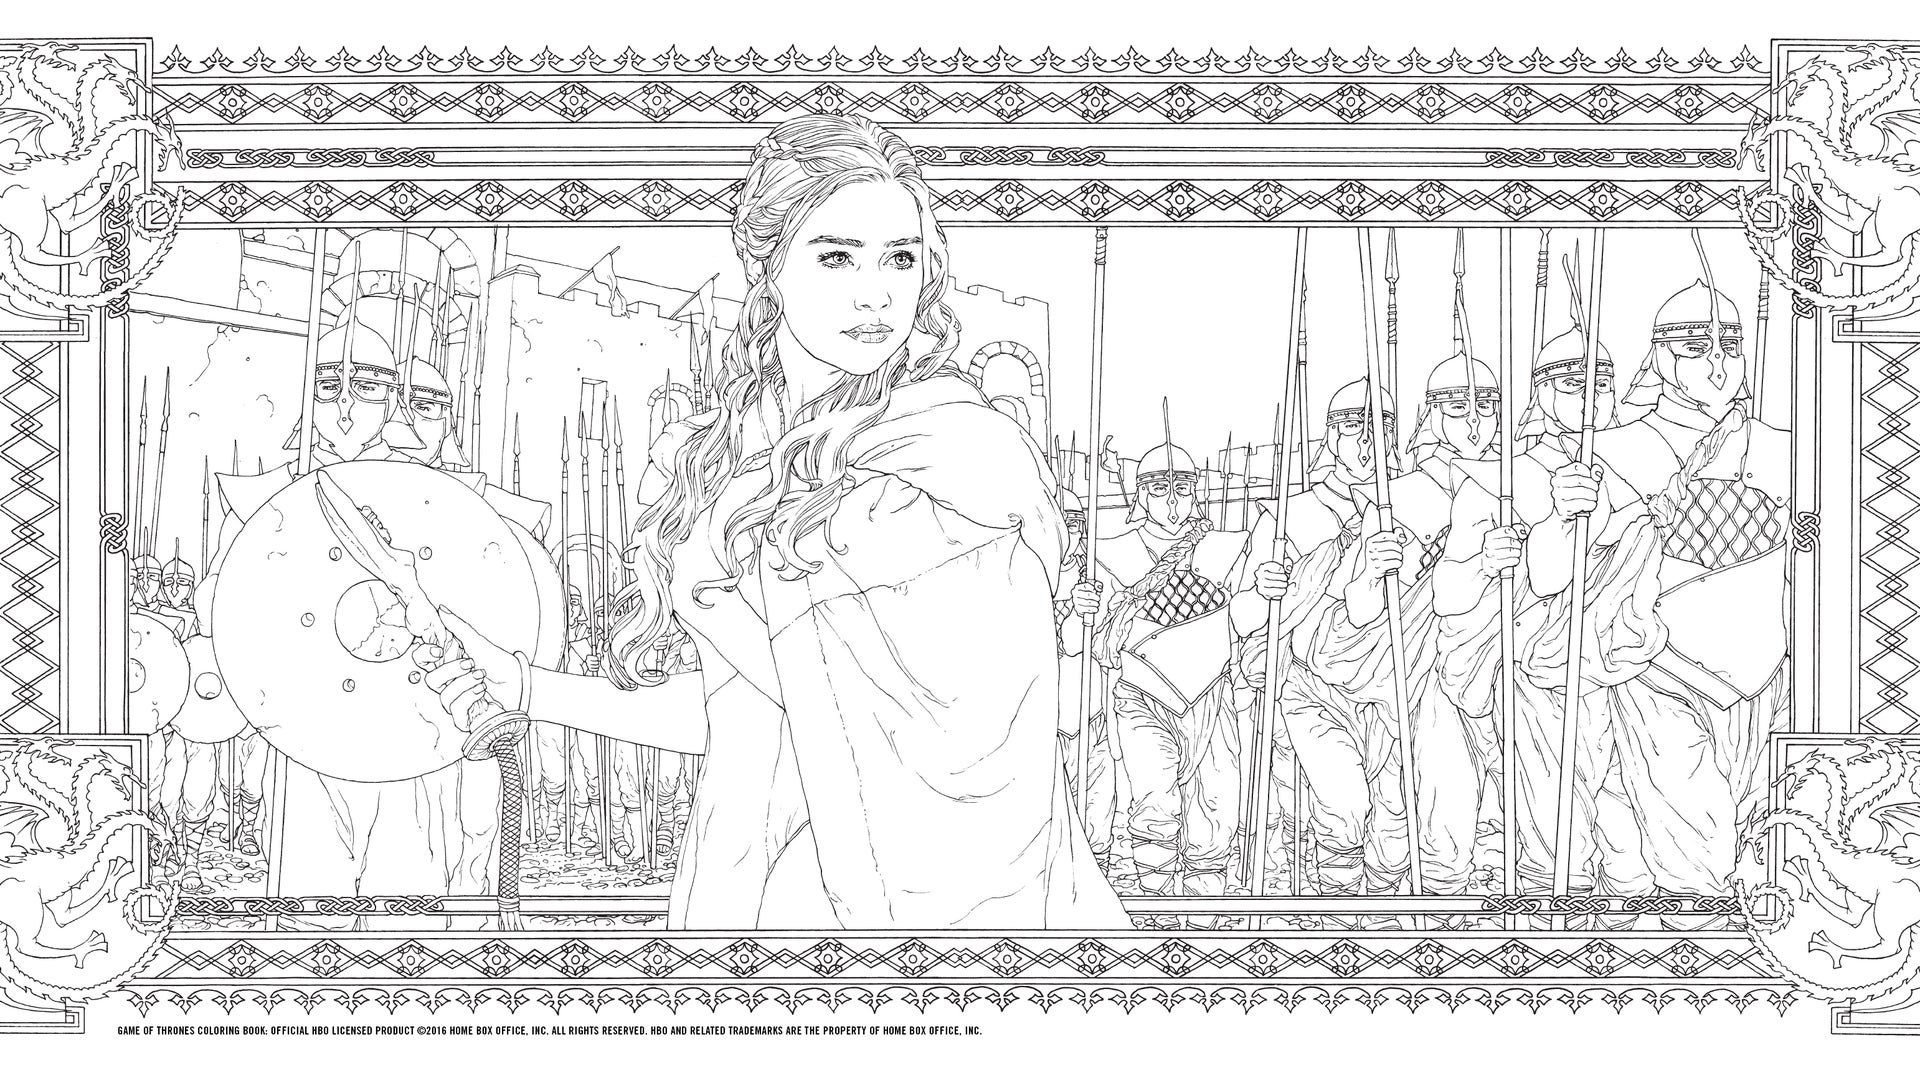 HBO's Game of Thrones Coloring Book: Daenerys and the Army of the Unsullied